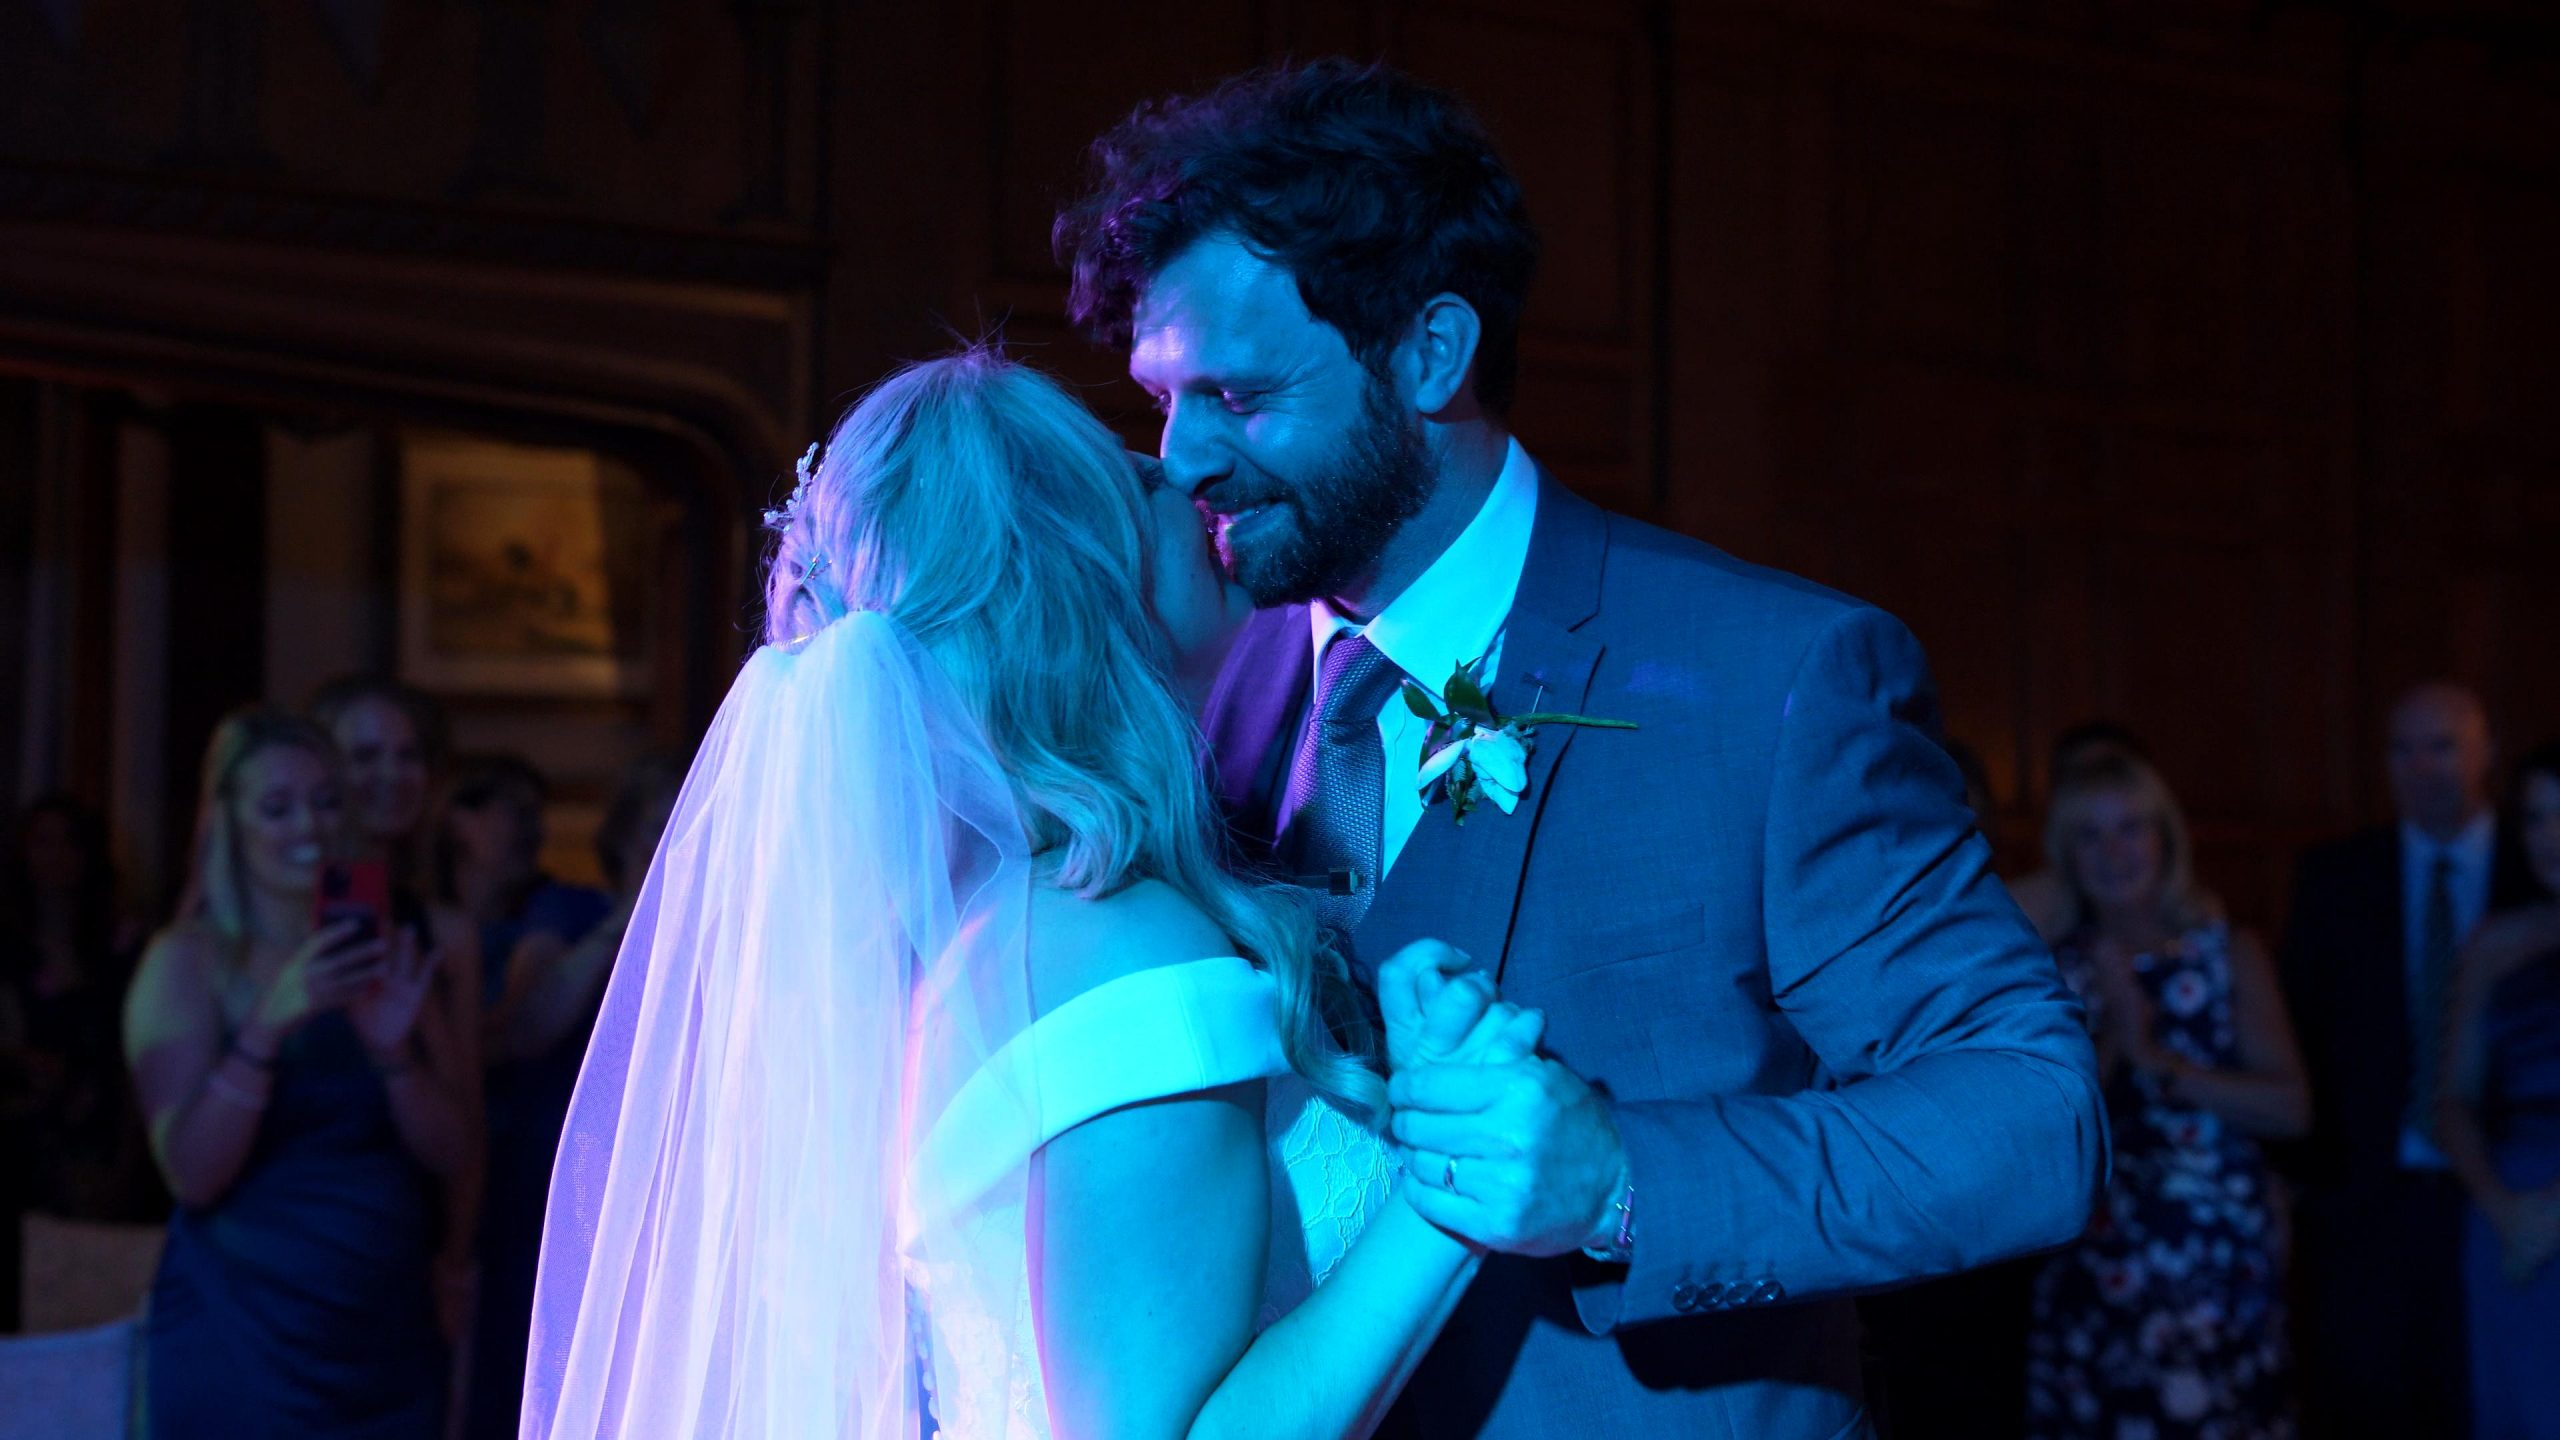 couple smile at each other during first dance